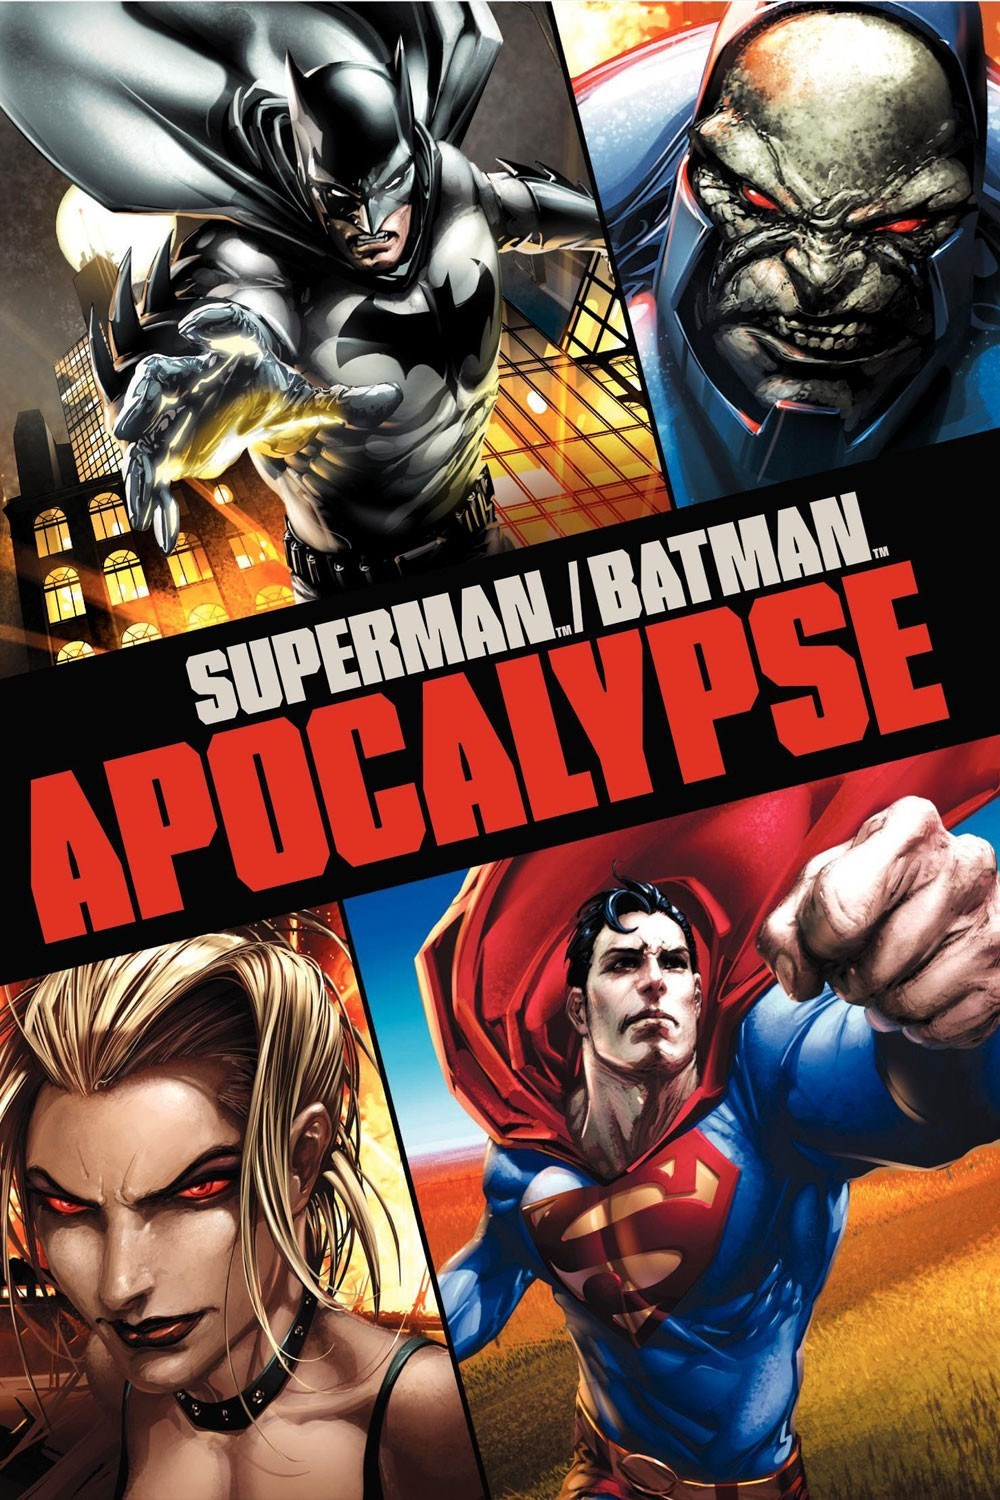 DOOMSDAY DVDRIP SUPERMAN FRENCH TÉLÉCHARGER